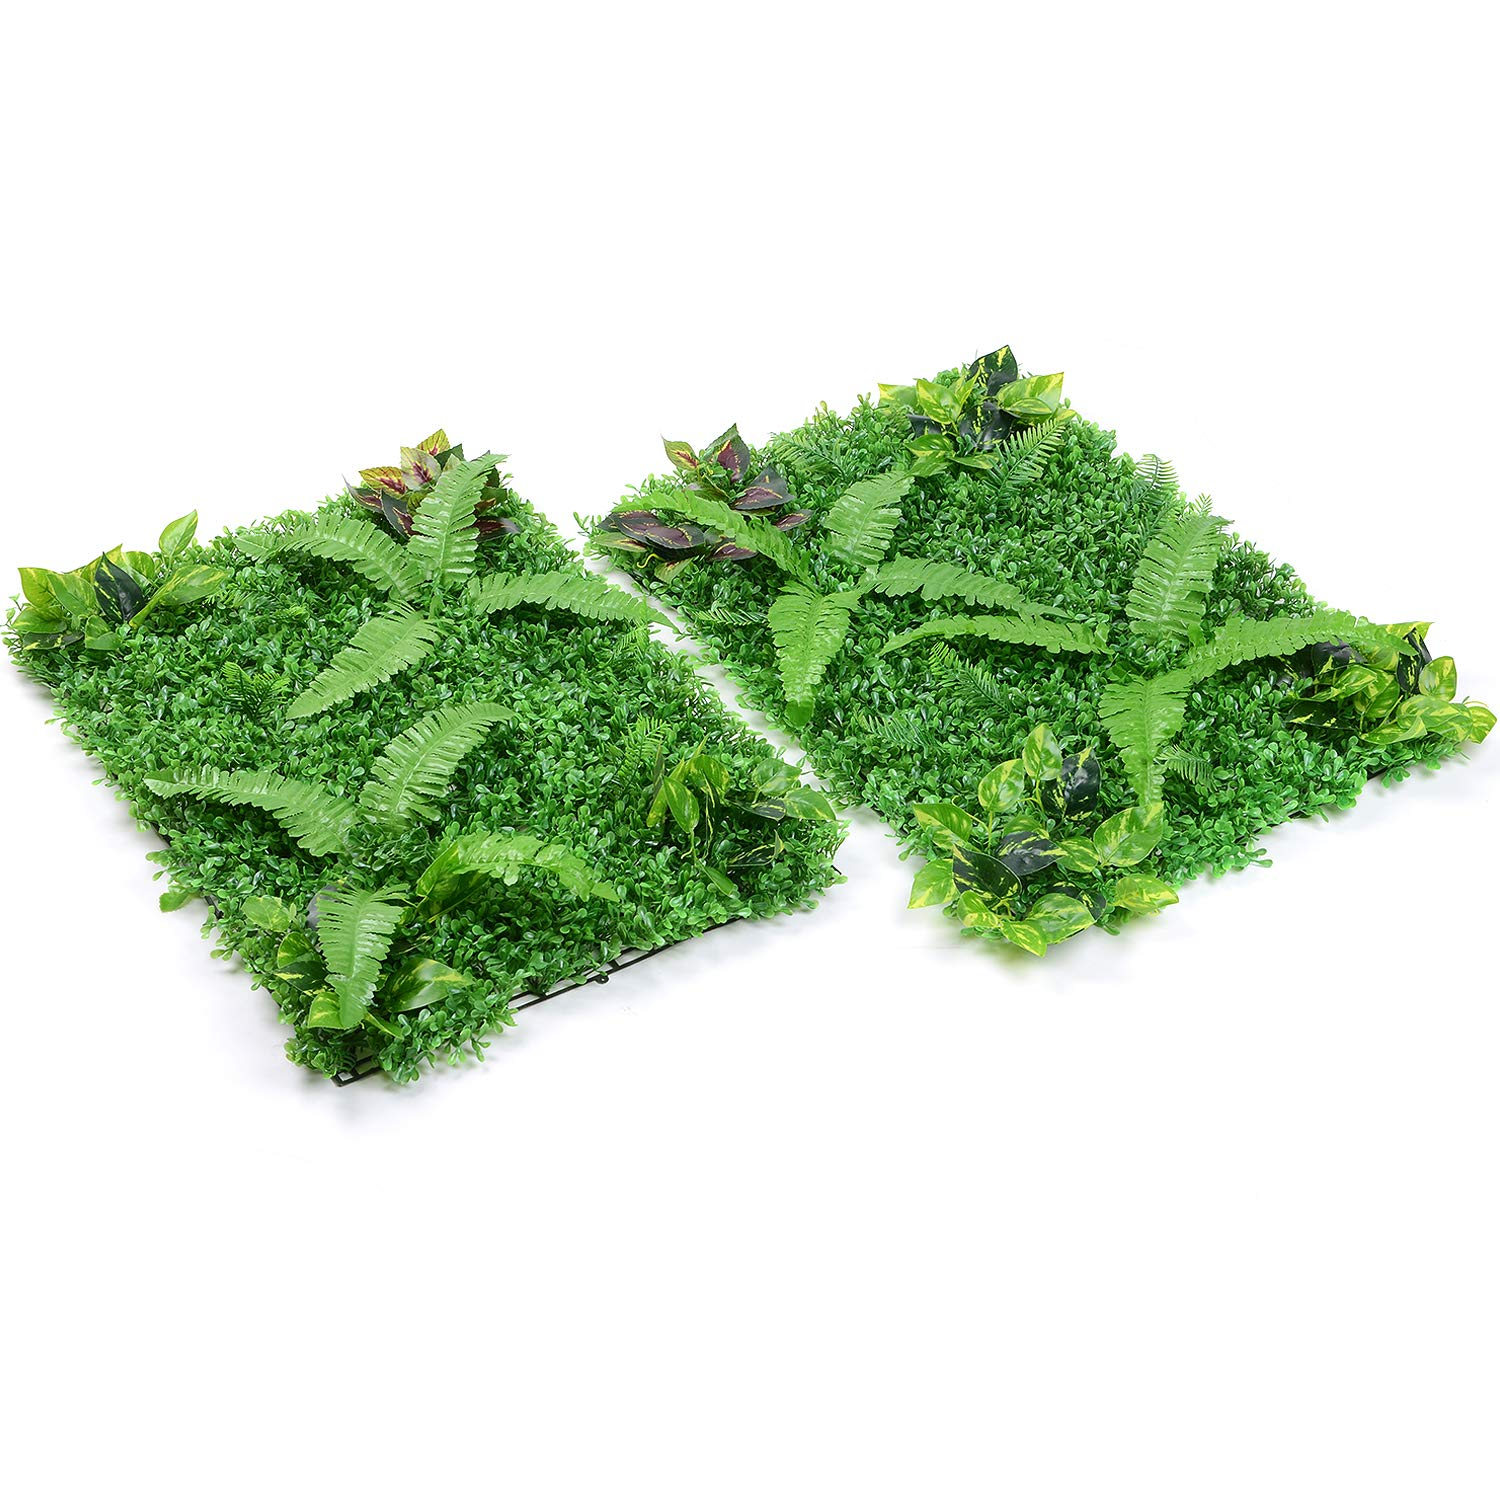 Lvydec 2 Pack Artificial Boxwood Hedge Panels, UV Protected Faux Greenery Fence Panels Mats for Privacy Fence Patio, Greenery Walls Indoor Outdoor Decor, 24'' L x 16'' W Panels, Hawaii Style